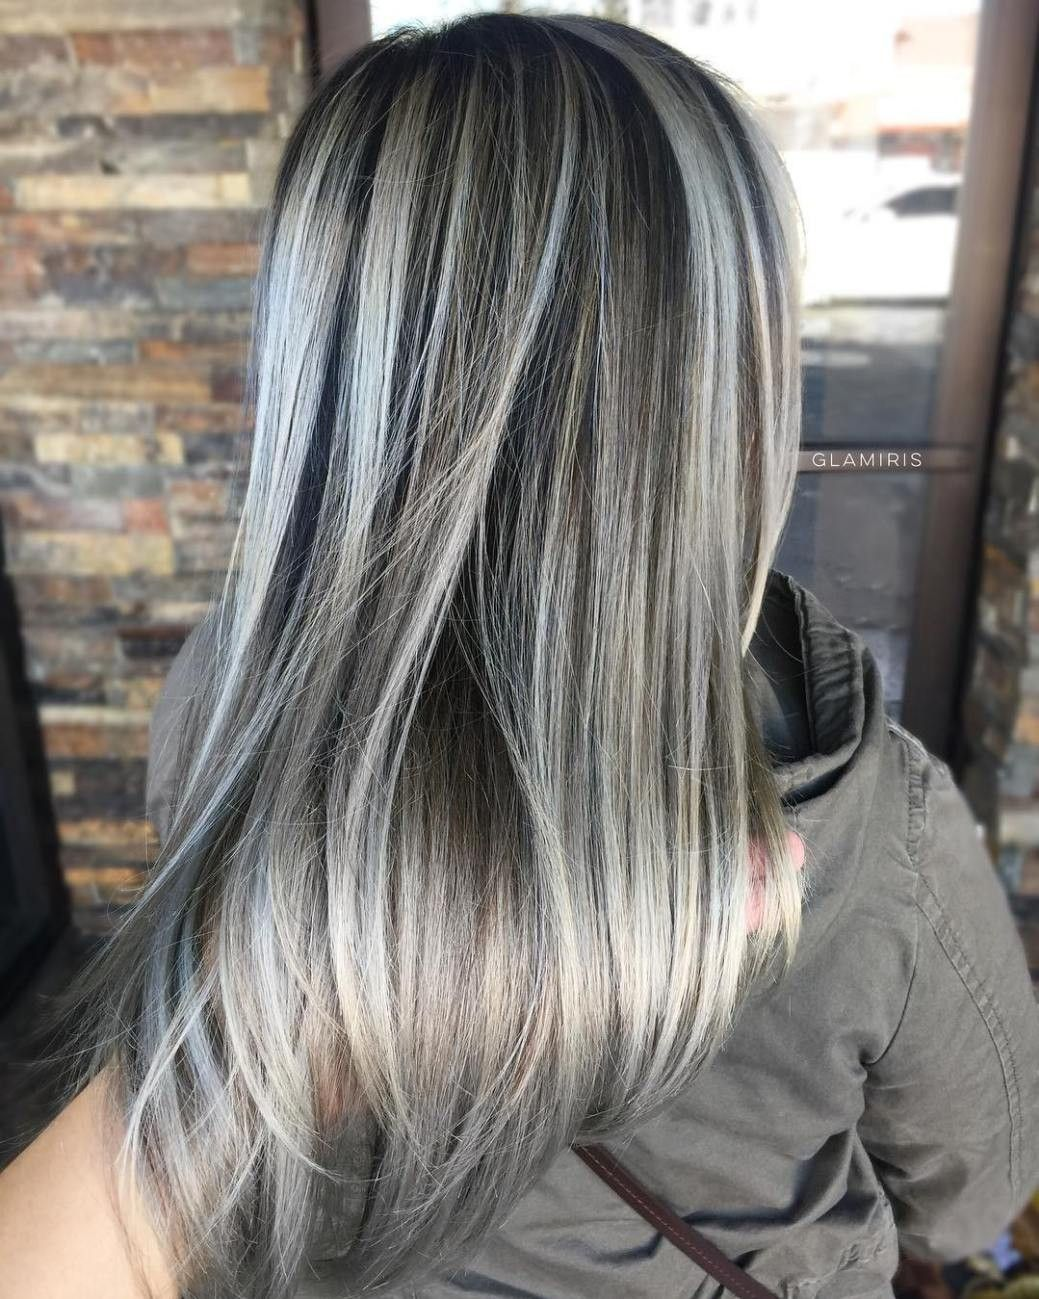 Pin by Carrie Beth Shouse-Twisted Sister on Grey hair   Pinterest ...